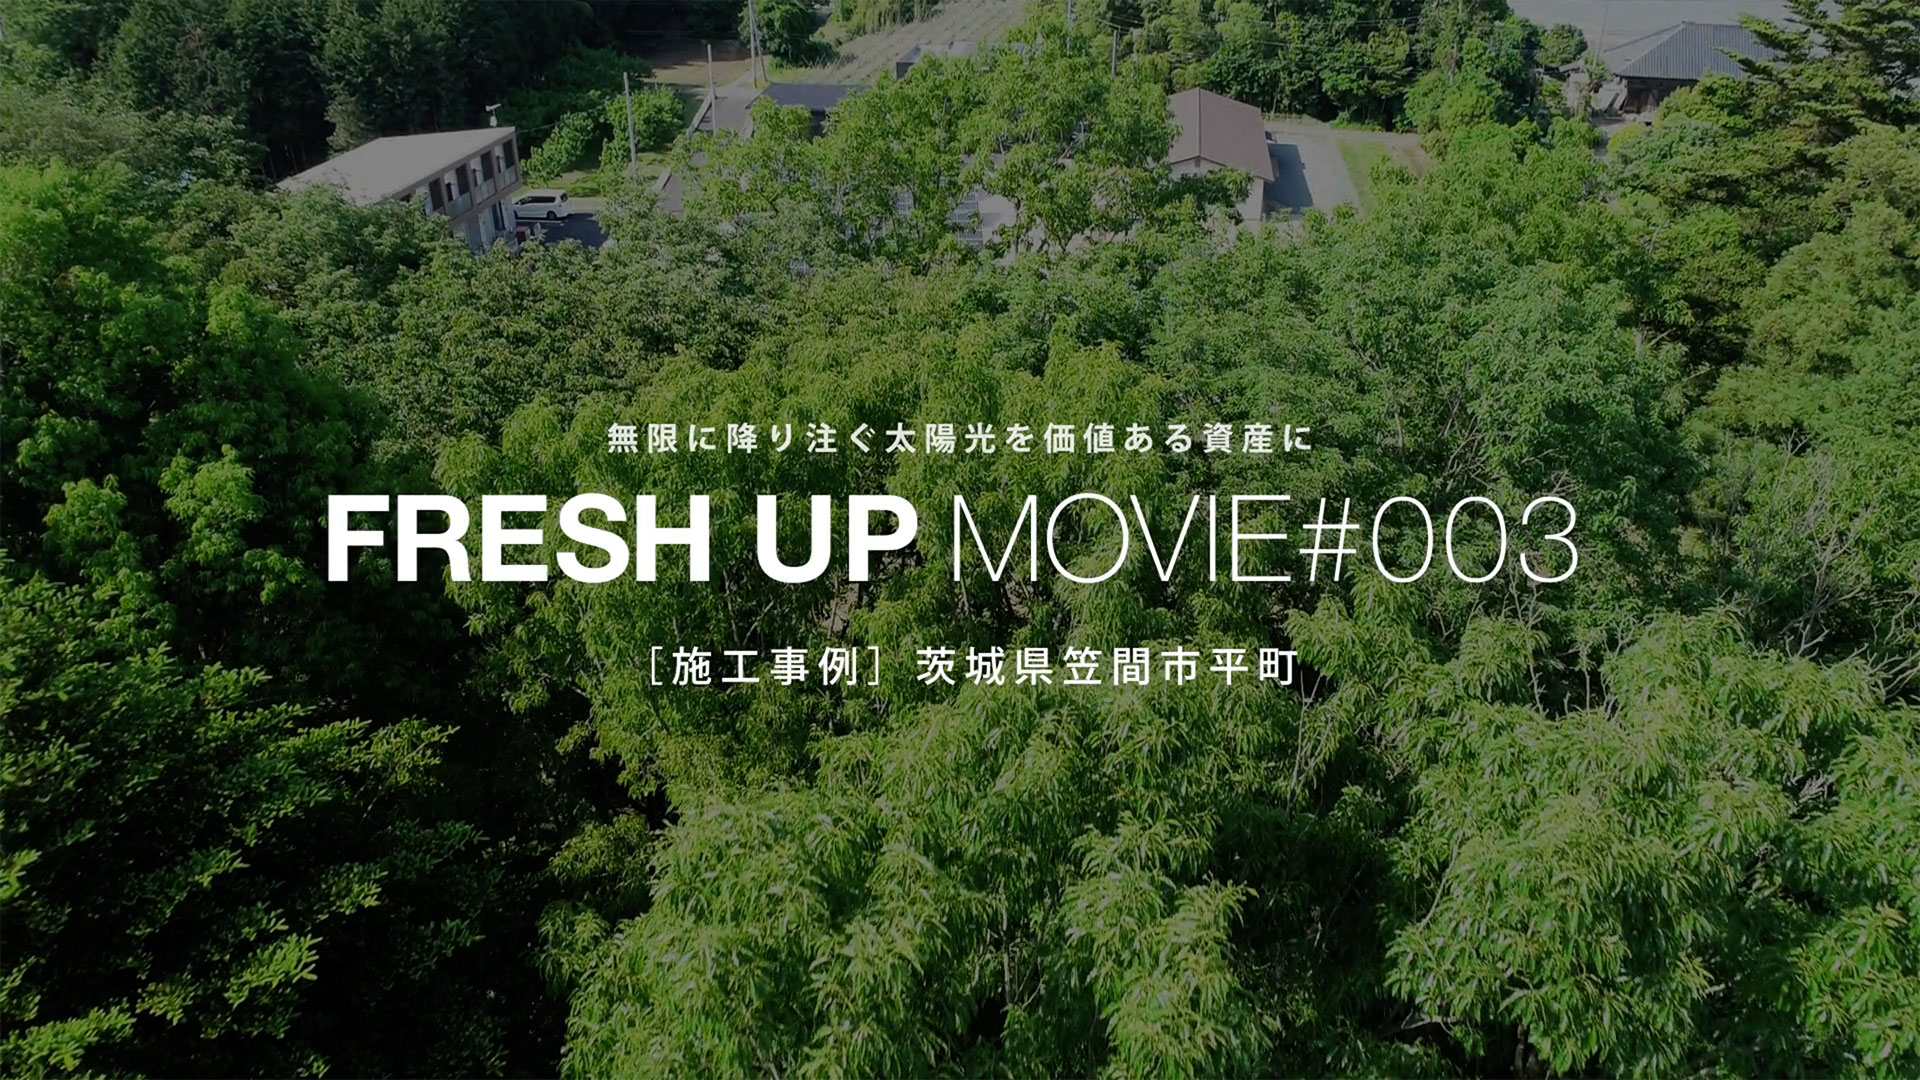 FRESH UP MOVIE 003